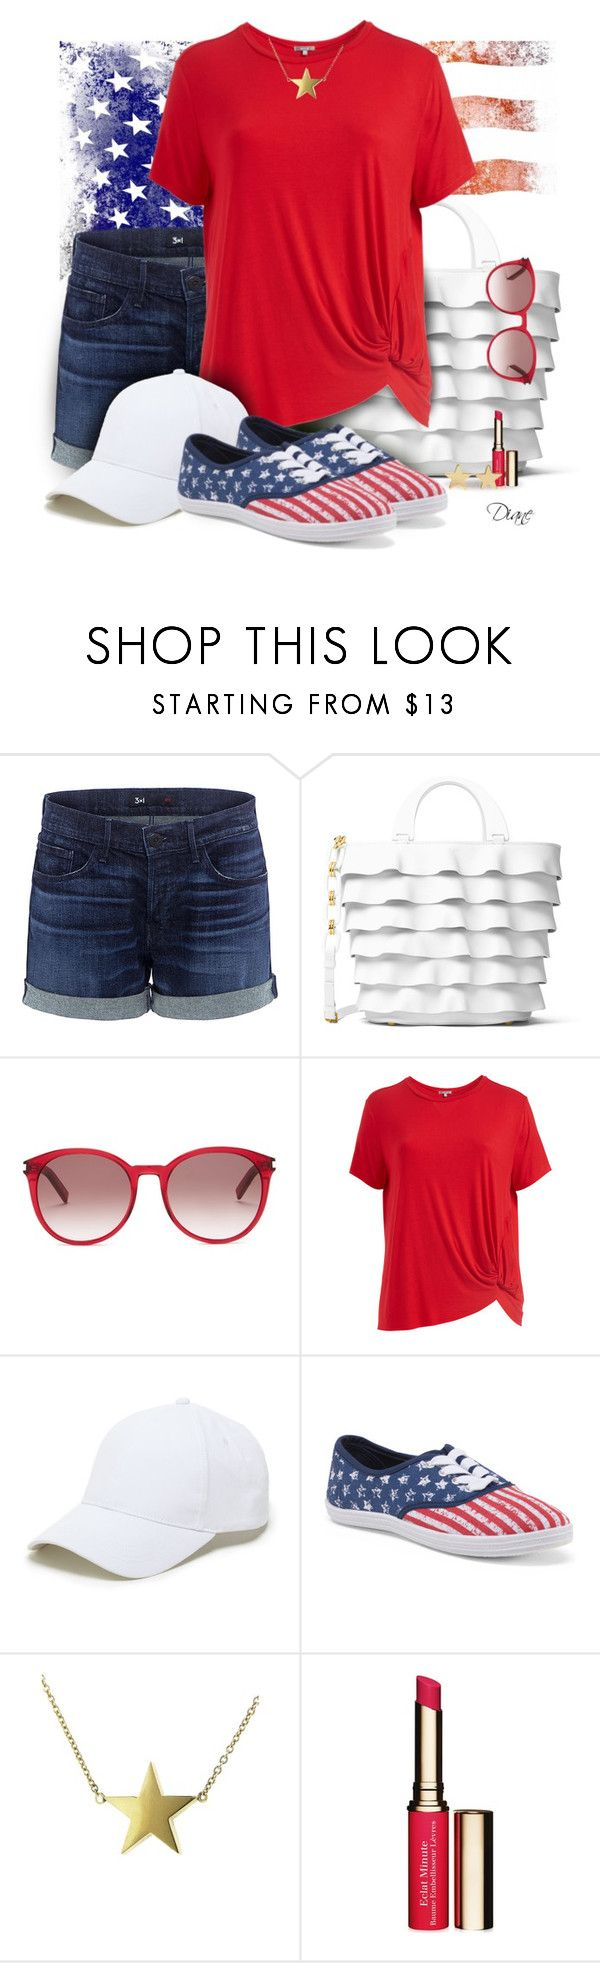 """Shorts Set"" by diane-hansen ❤ liked on Polyvore featuring 3x1, Michael Kors, Yves Saint Laurent, Abito, Sole Society, Jennifer Meyer Jewelry, Clarins and plus size clothing"